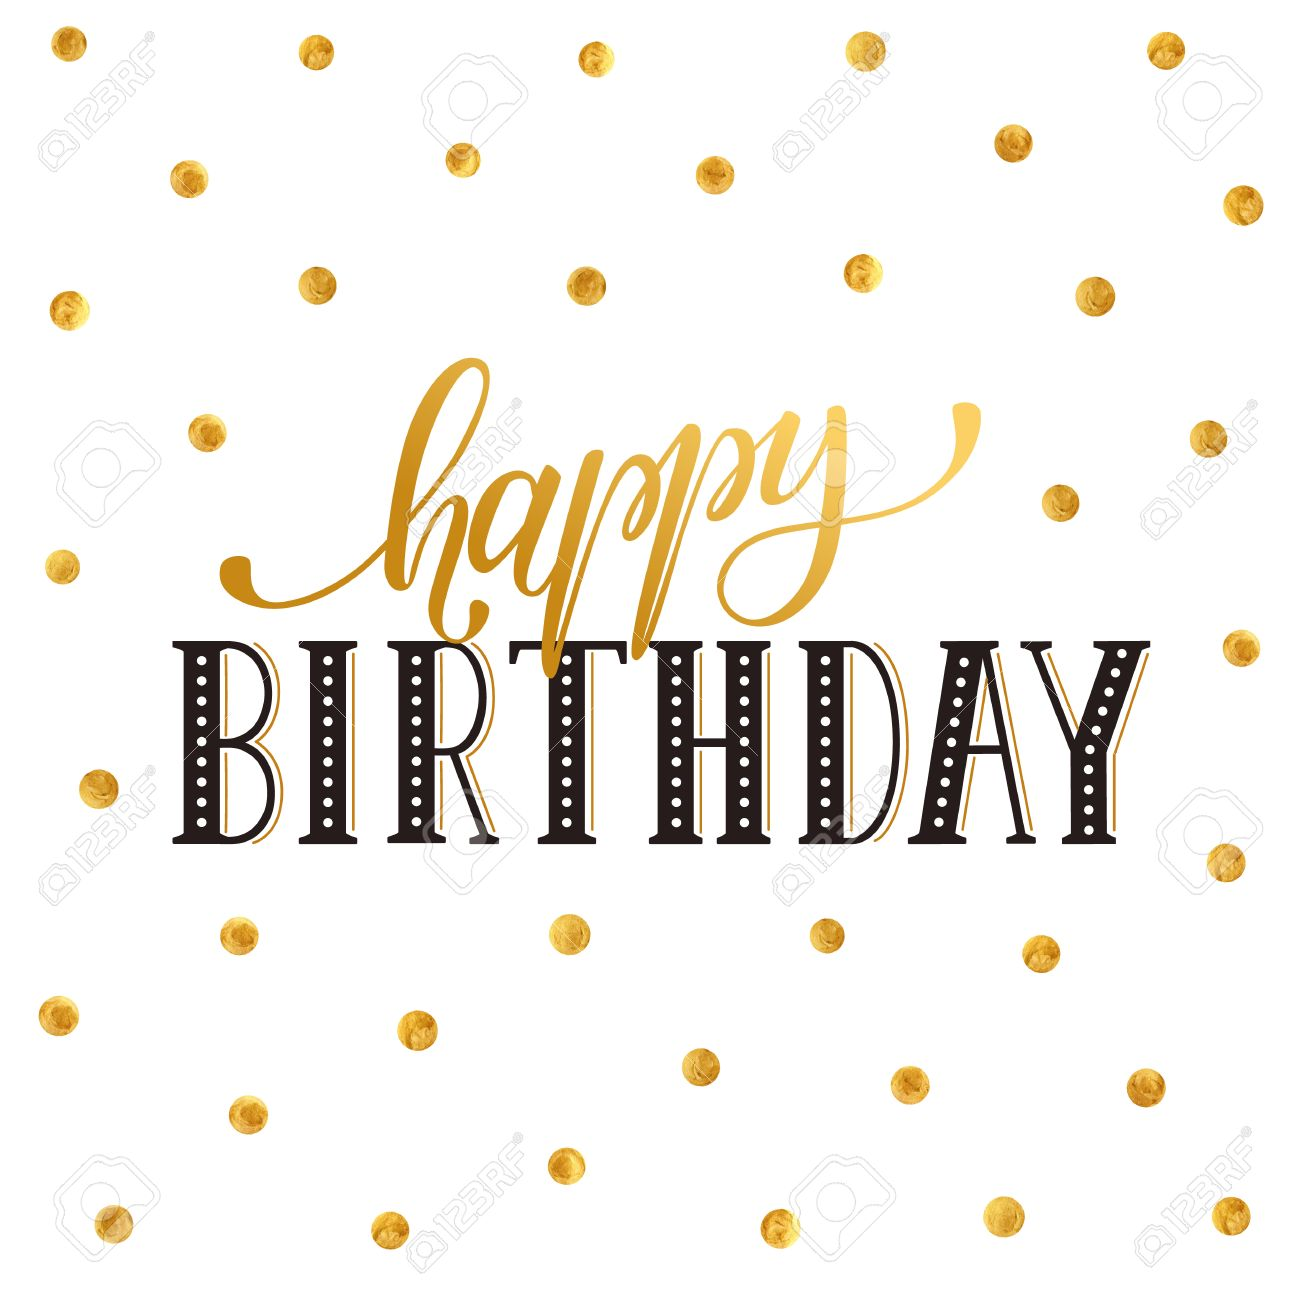 Happy birthday greeting card lettering with golden polka dot happy birthday greeting card lettering with golden polka dot pattern on white background birthday wording m4hsunfo